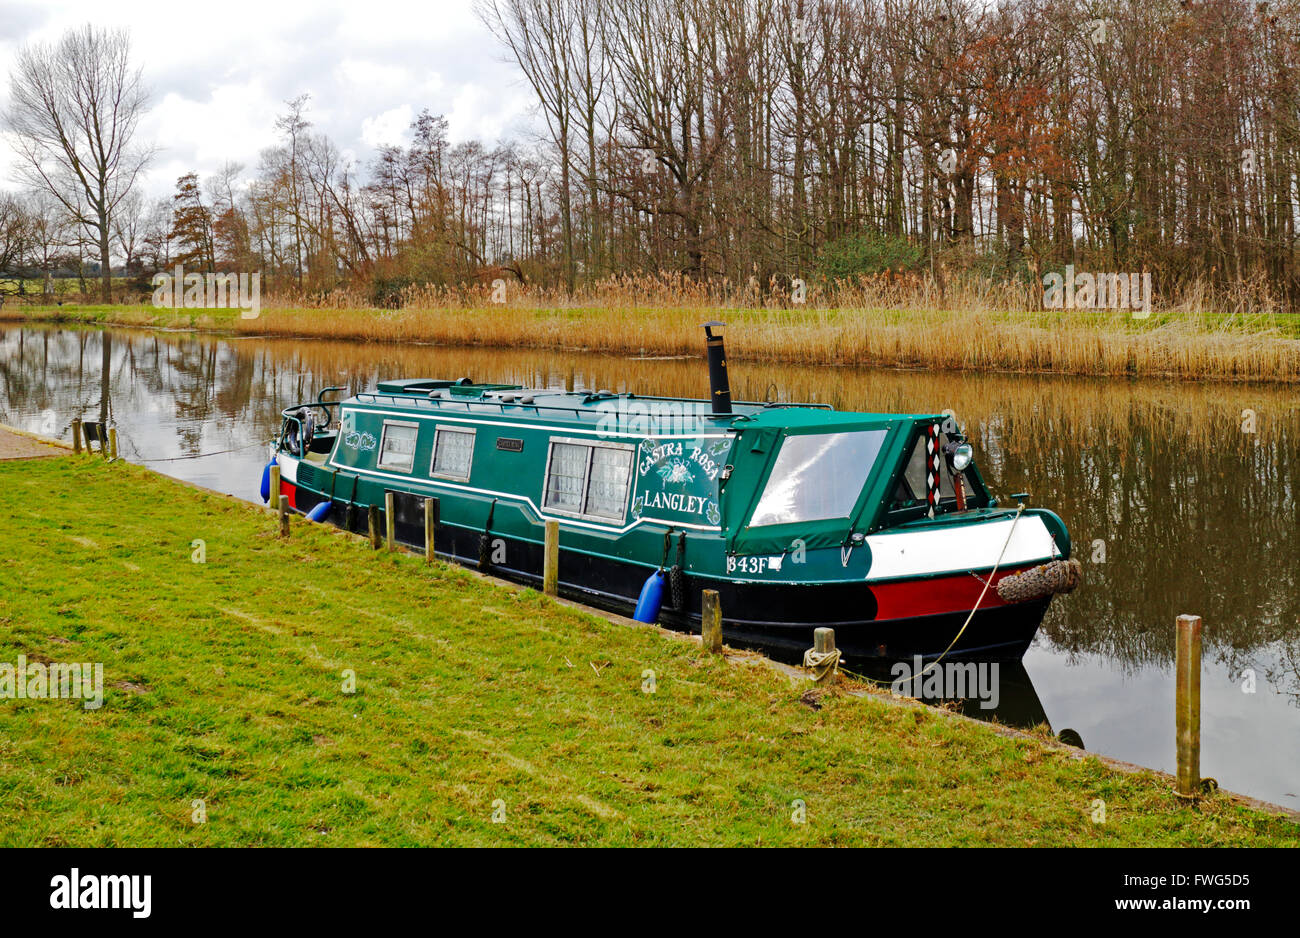 A longboat moored in Langley Dyke on the Norfolk Broads at Langley, Norfolk, England, United Kingdom. - Stock Image